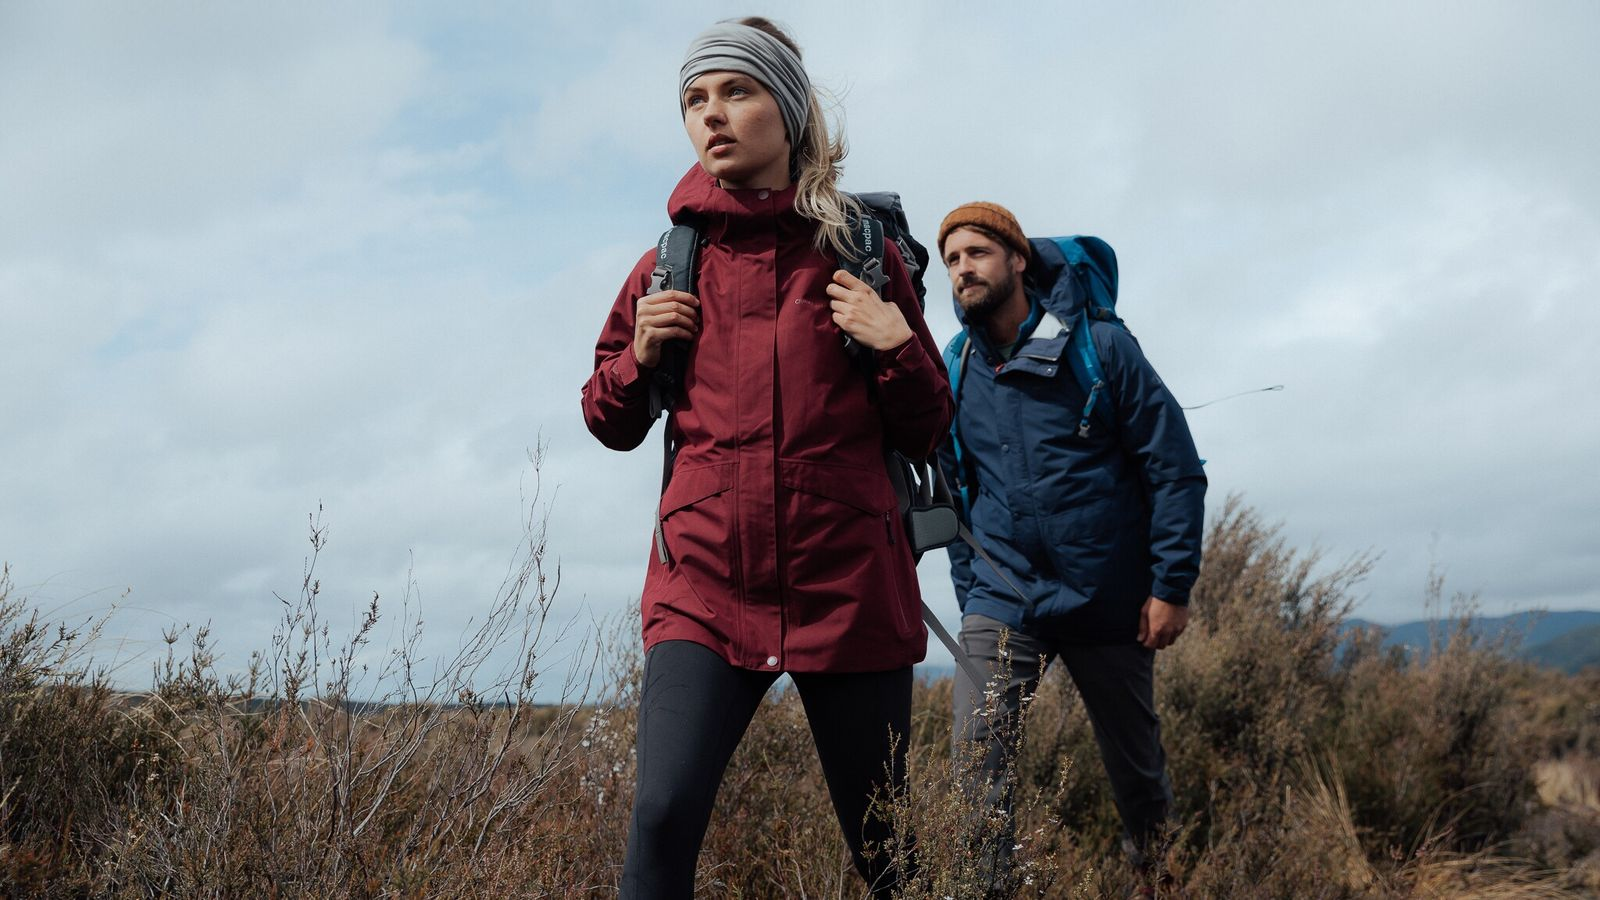 One lucky winner will receive £500 worth of Craghoppers kit, with the opportunity to choose from ...